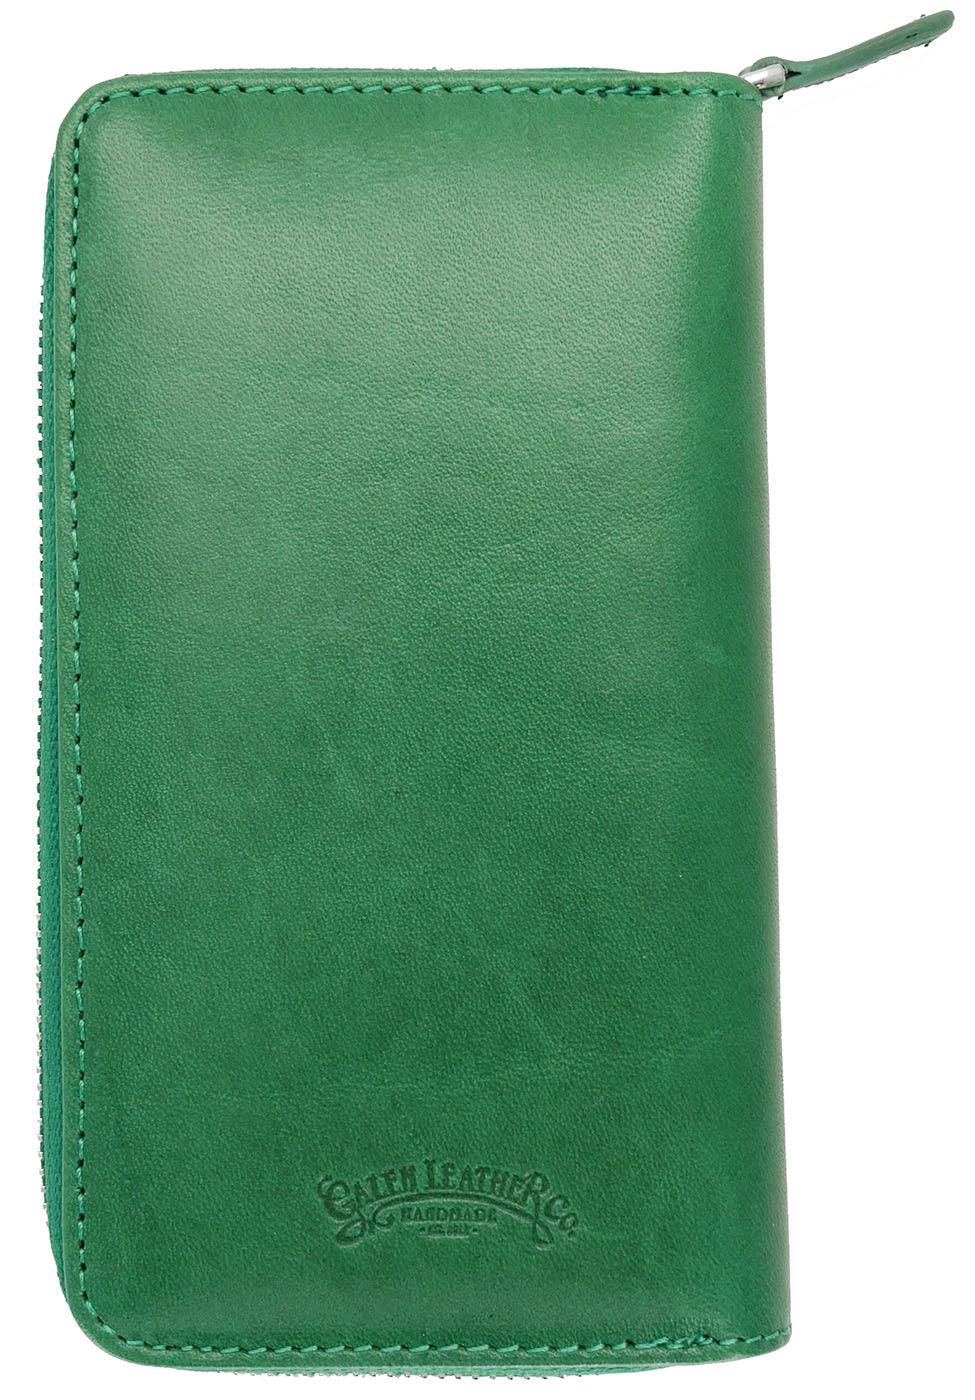 Galen Leather Co. Zippered 3 Slot Pen Case- Green